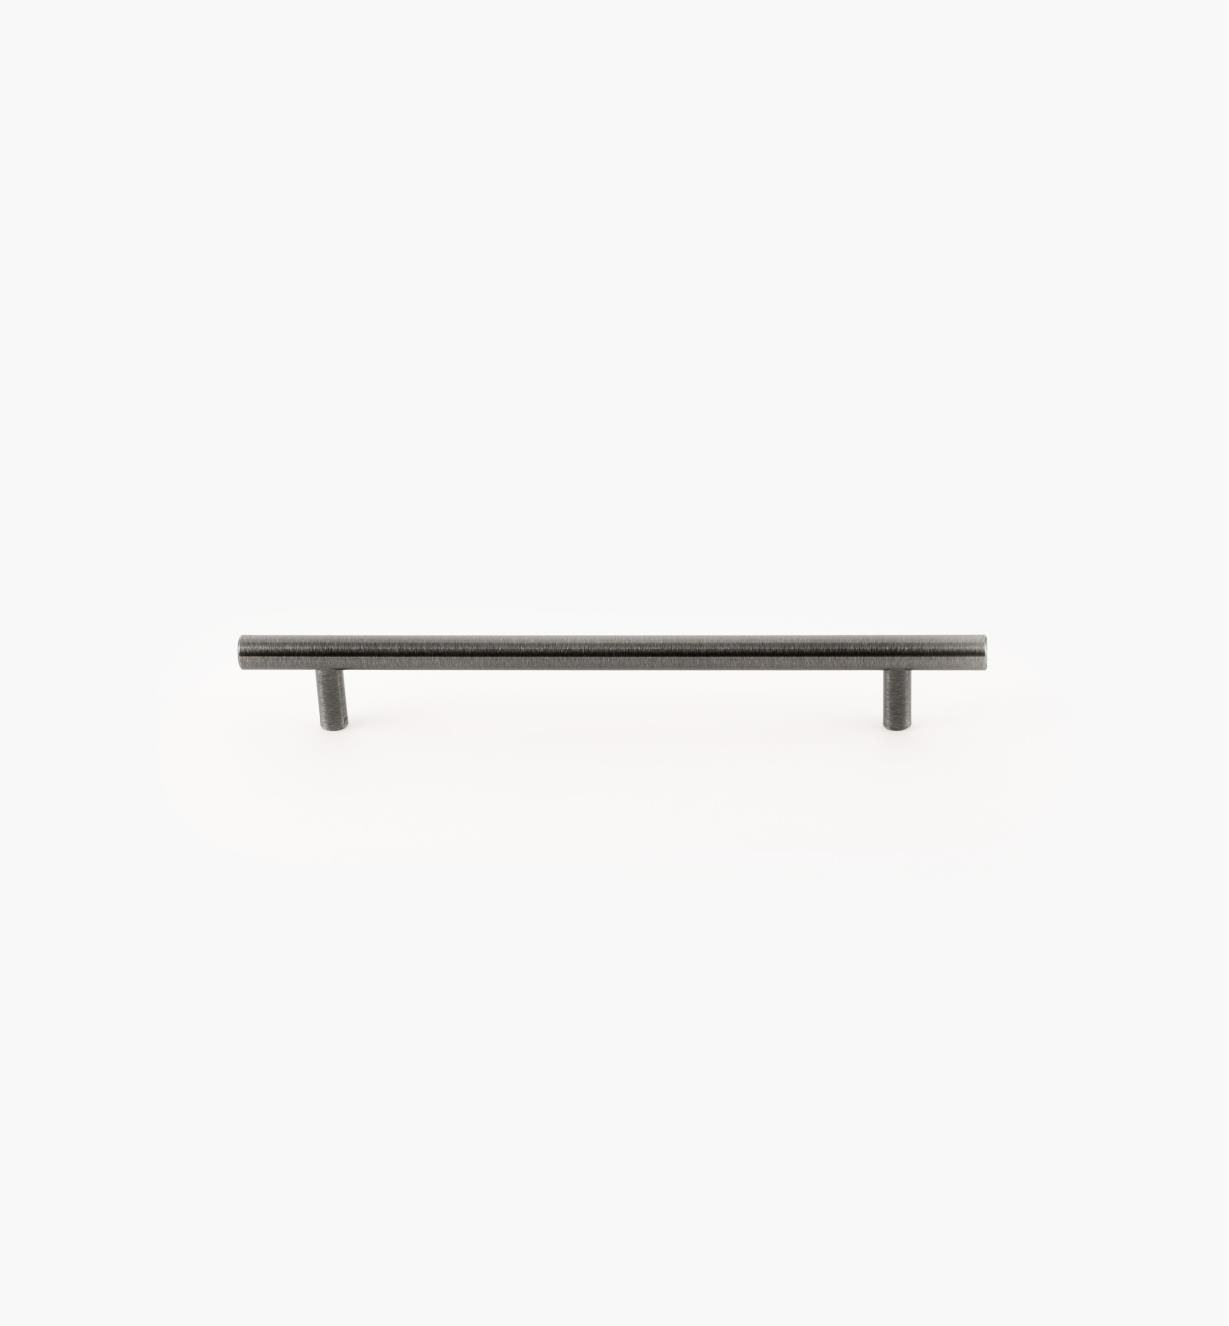 02A1483 - Bar Gunmetal 192mm (252mm) Pull, each